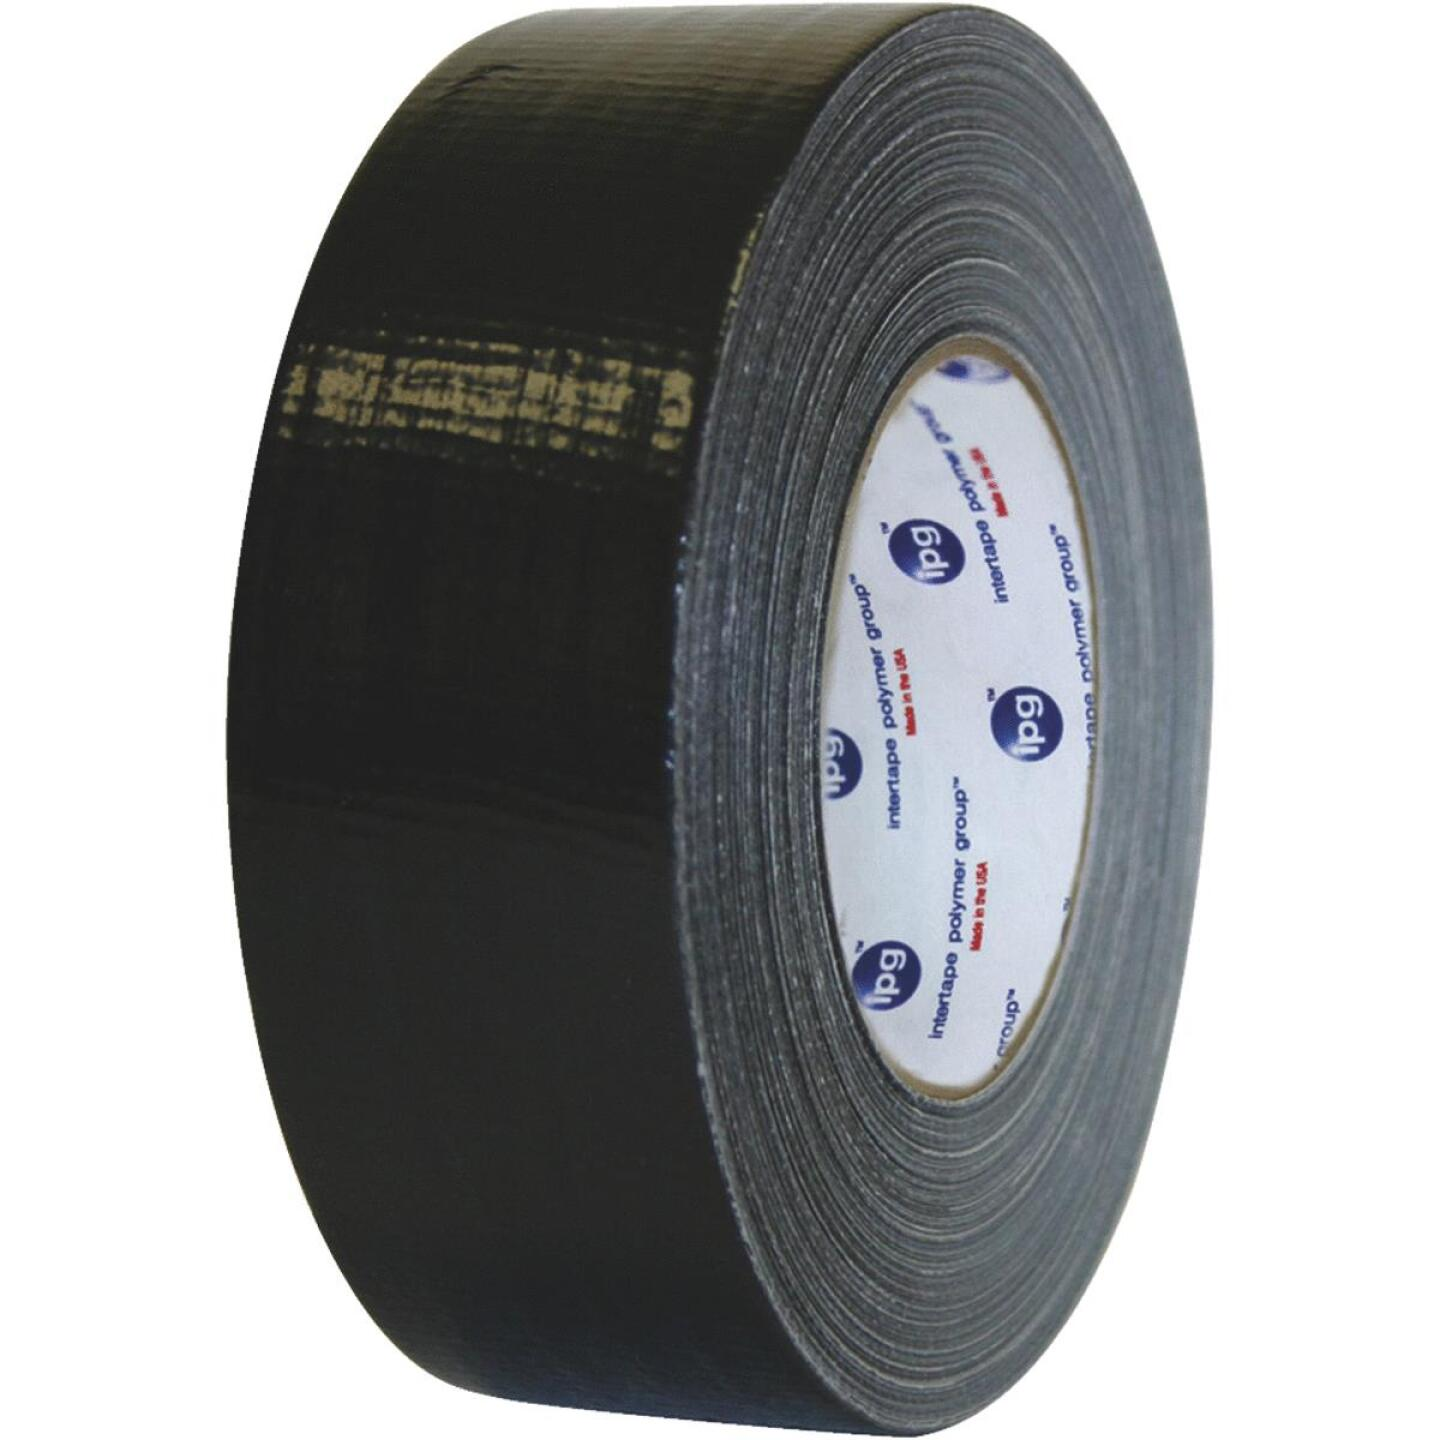 Intertape DUCTape 1.88 In. x 60 Yd. General Purpose Duct Tape, Black Image 1